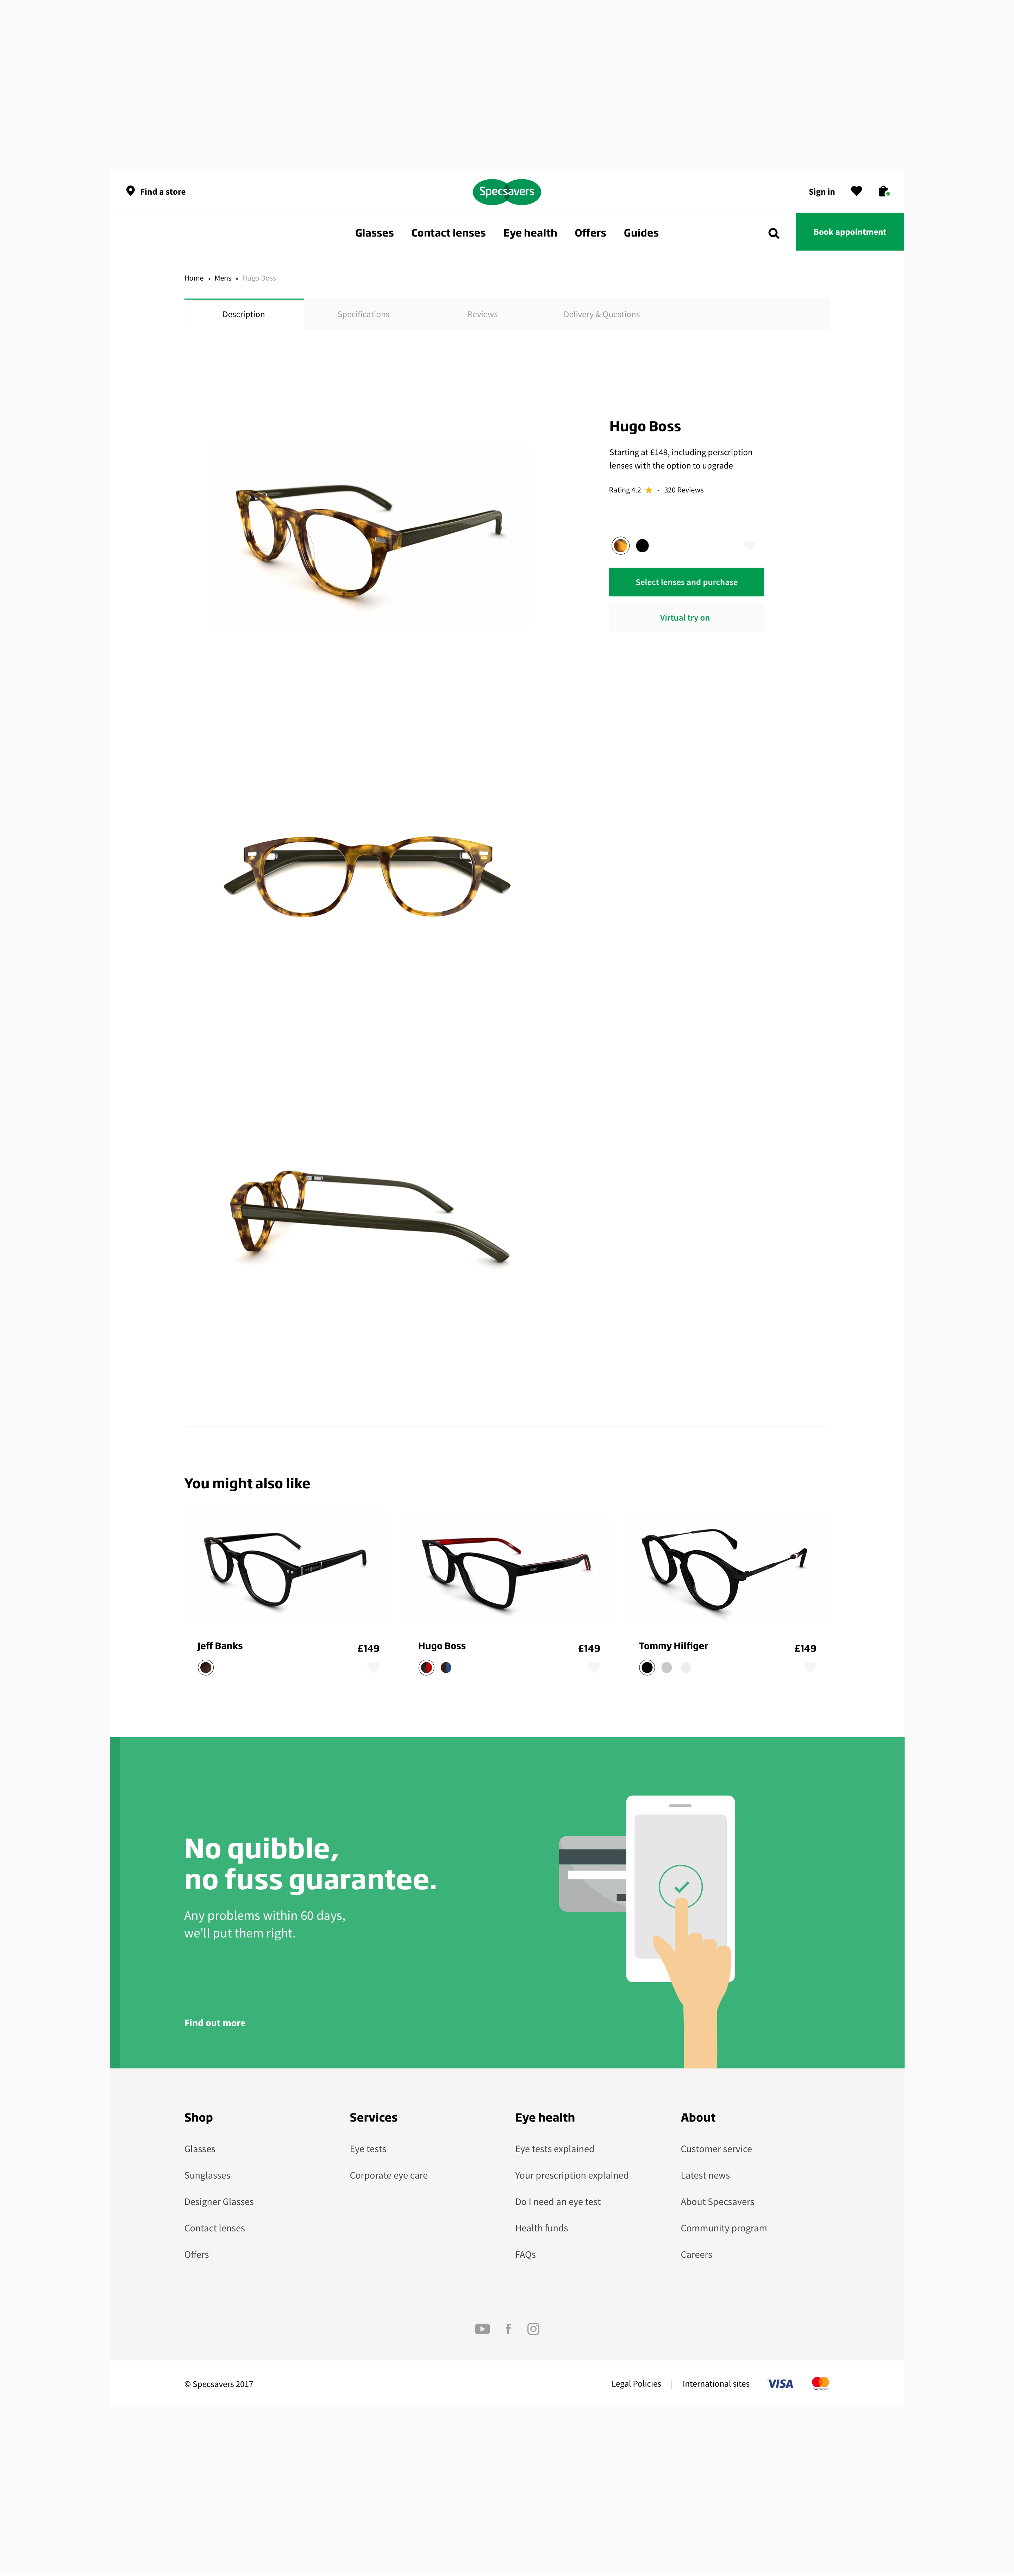 Specsavers_PDP_Full_1440px